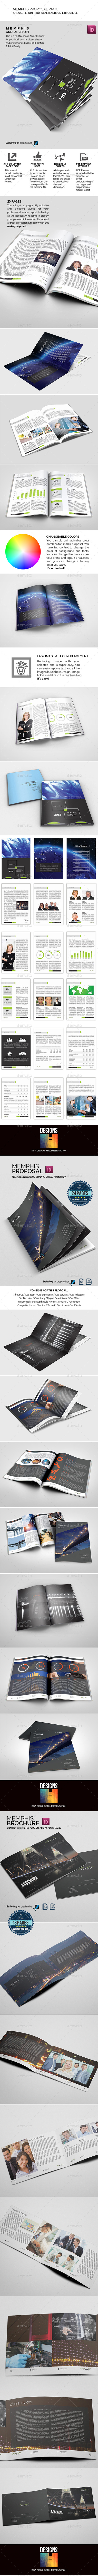 GraphicRiver Memphis Multipurpose Proposal Bundle 8891973